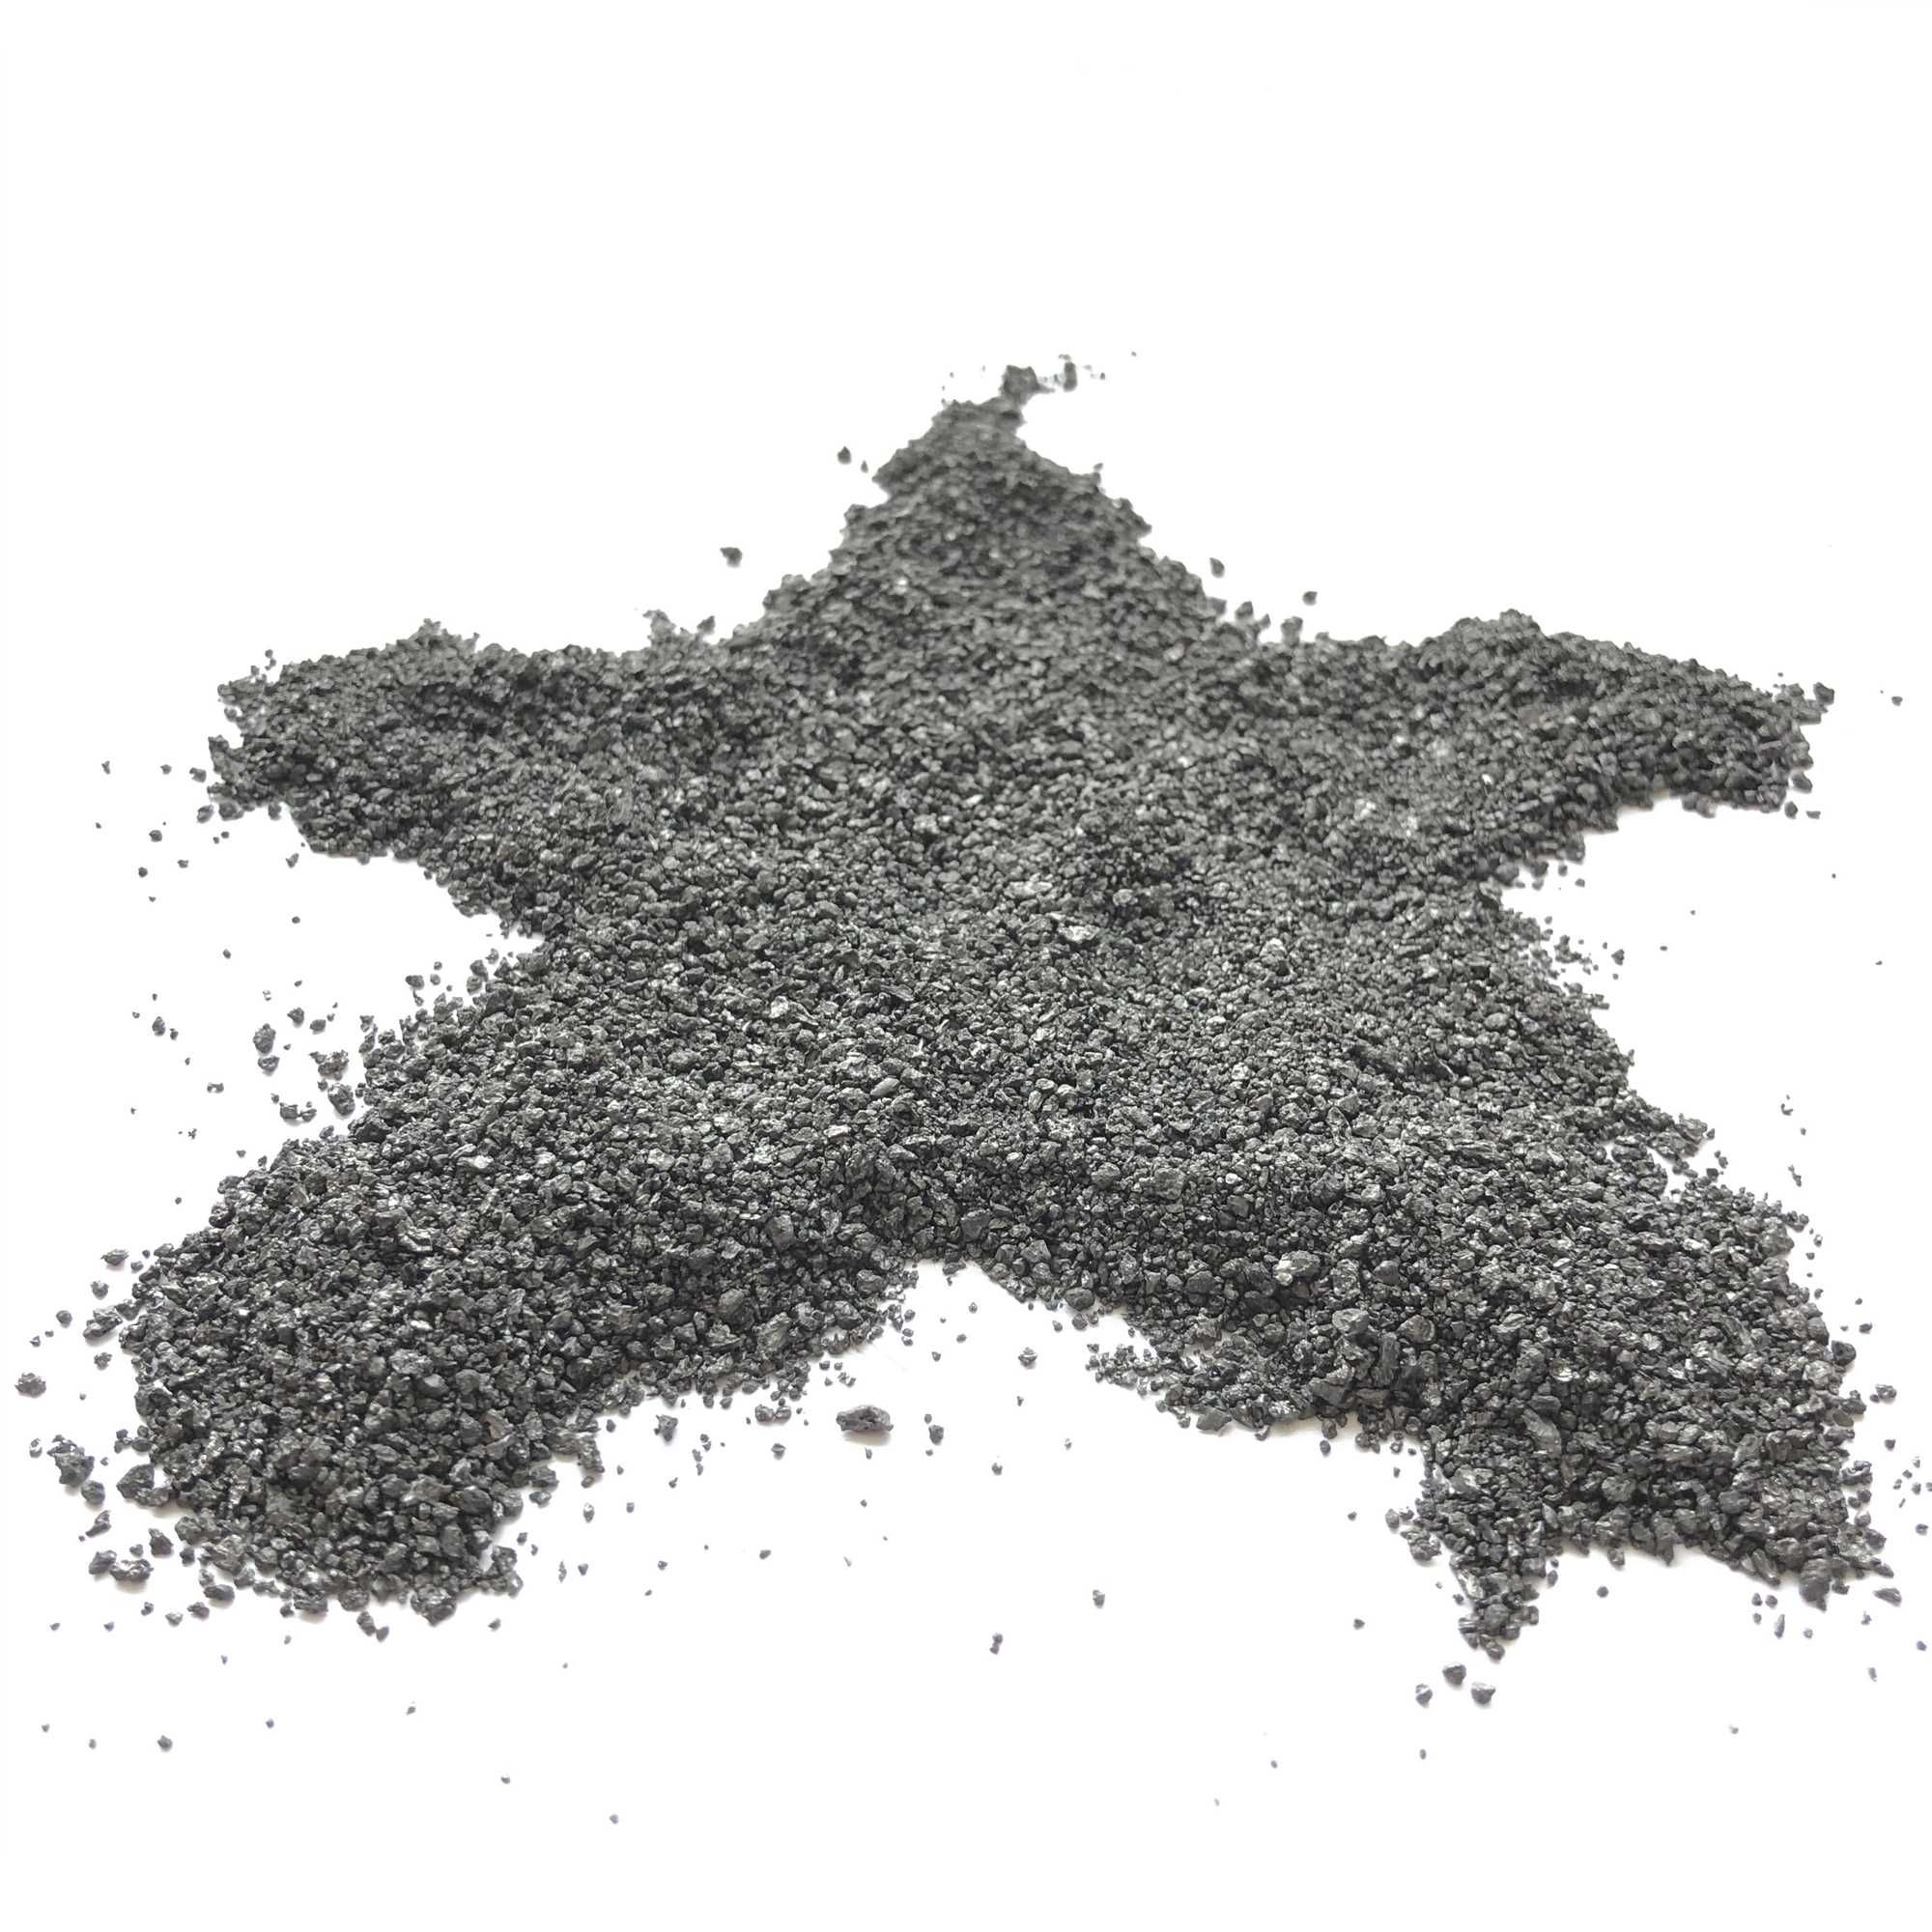 Carbon industry carbon raiser,Smelting silicon,0.5% Ash